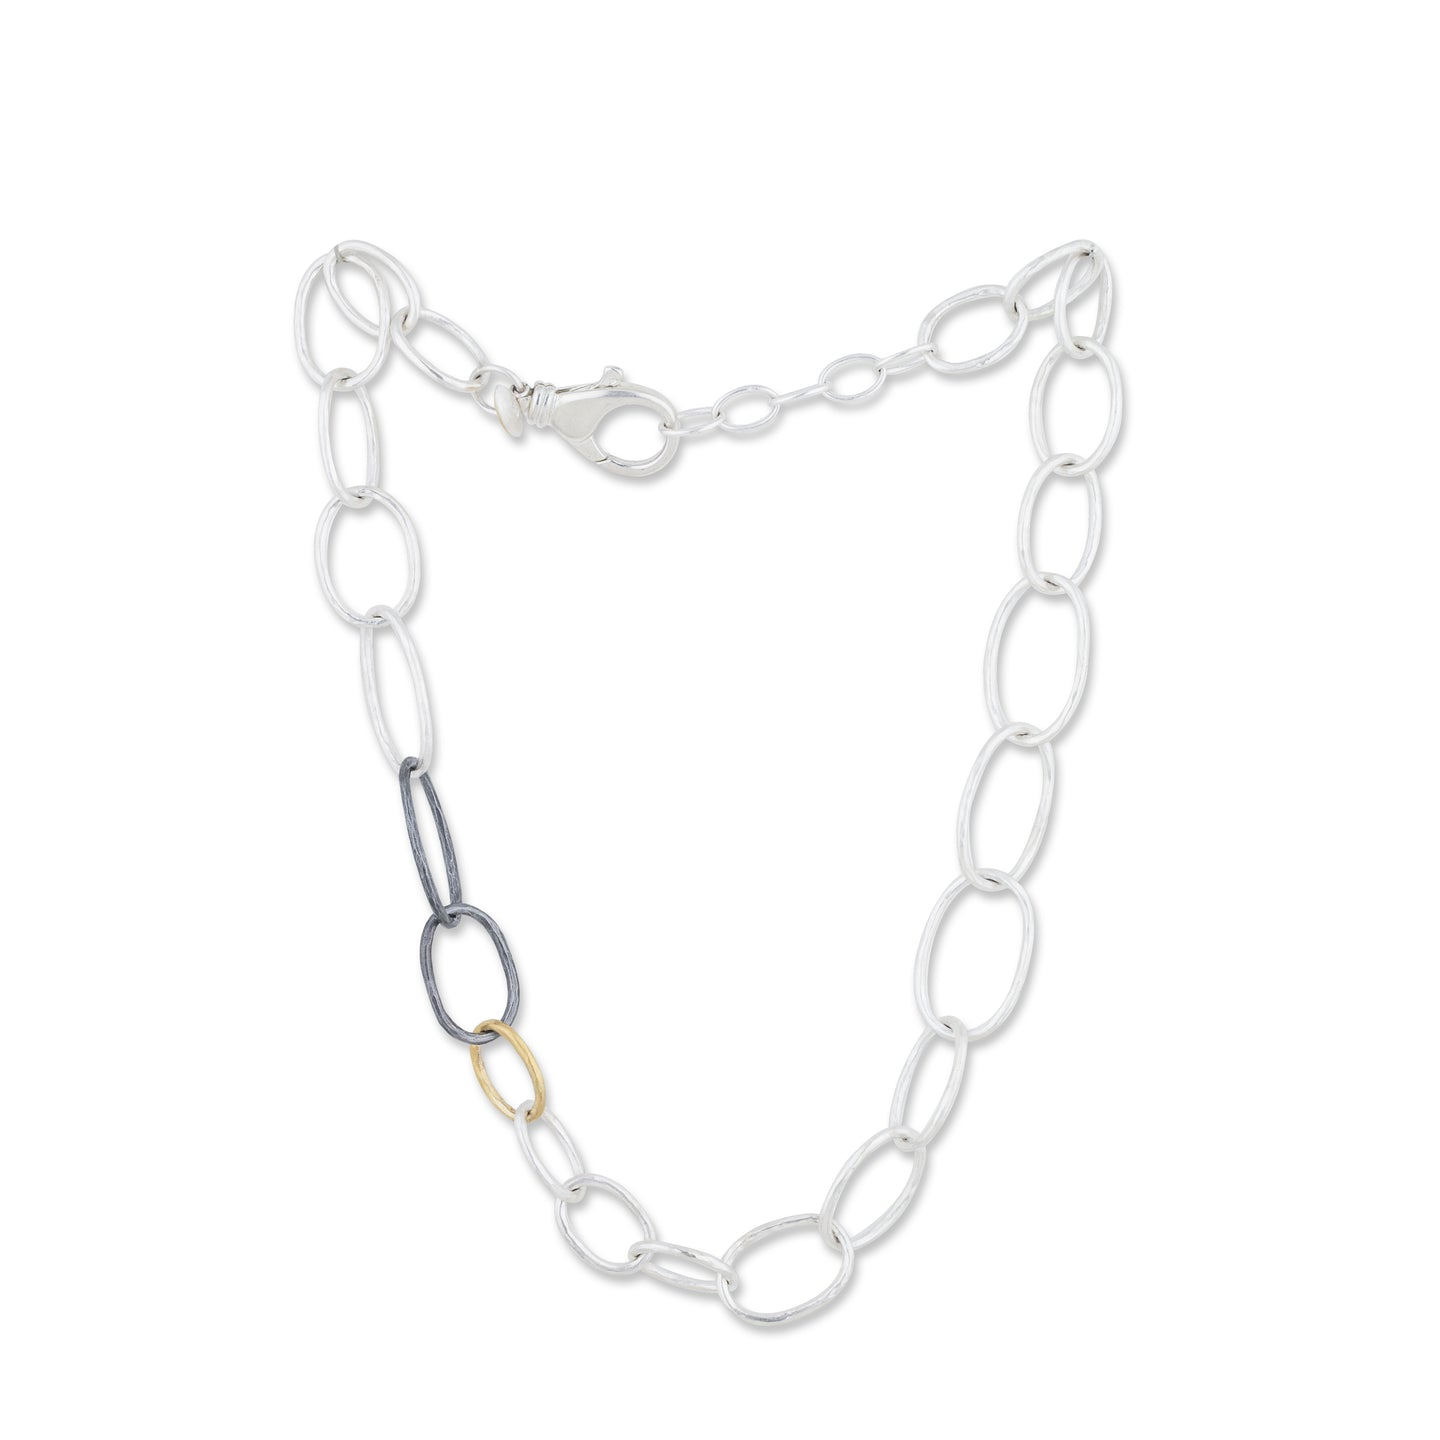 Lika Behar Tri-Tone Organic Link Necklace